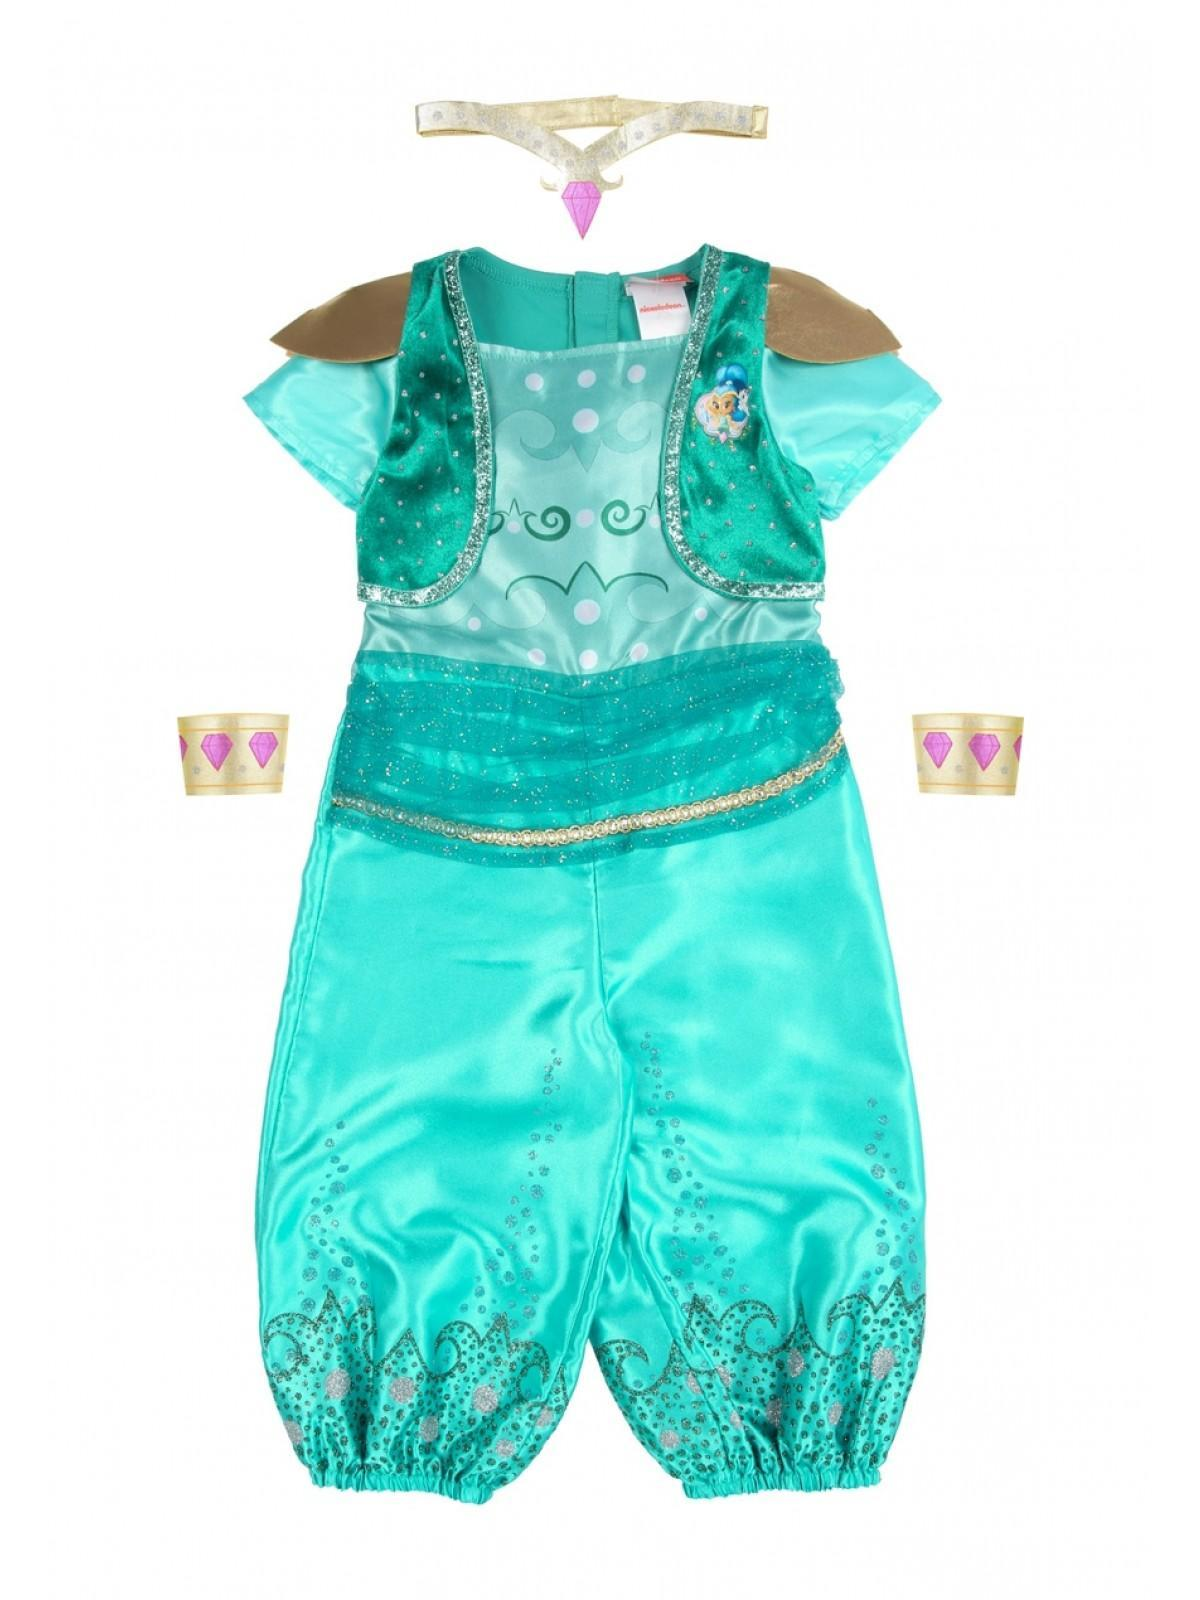 c2ae2bef61 Home; Younger Girls Teal Shimmer And Shine Fancy Dress Outfit. Back.  PreviousNext